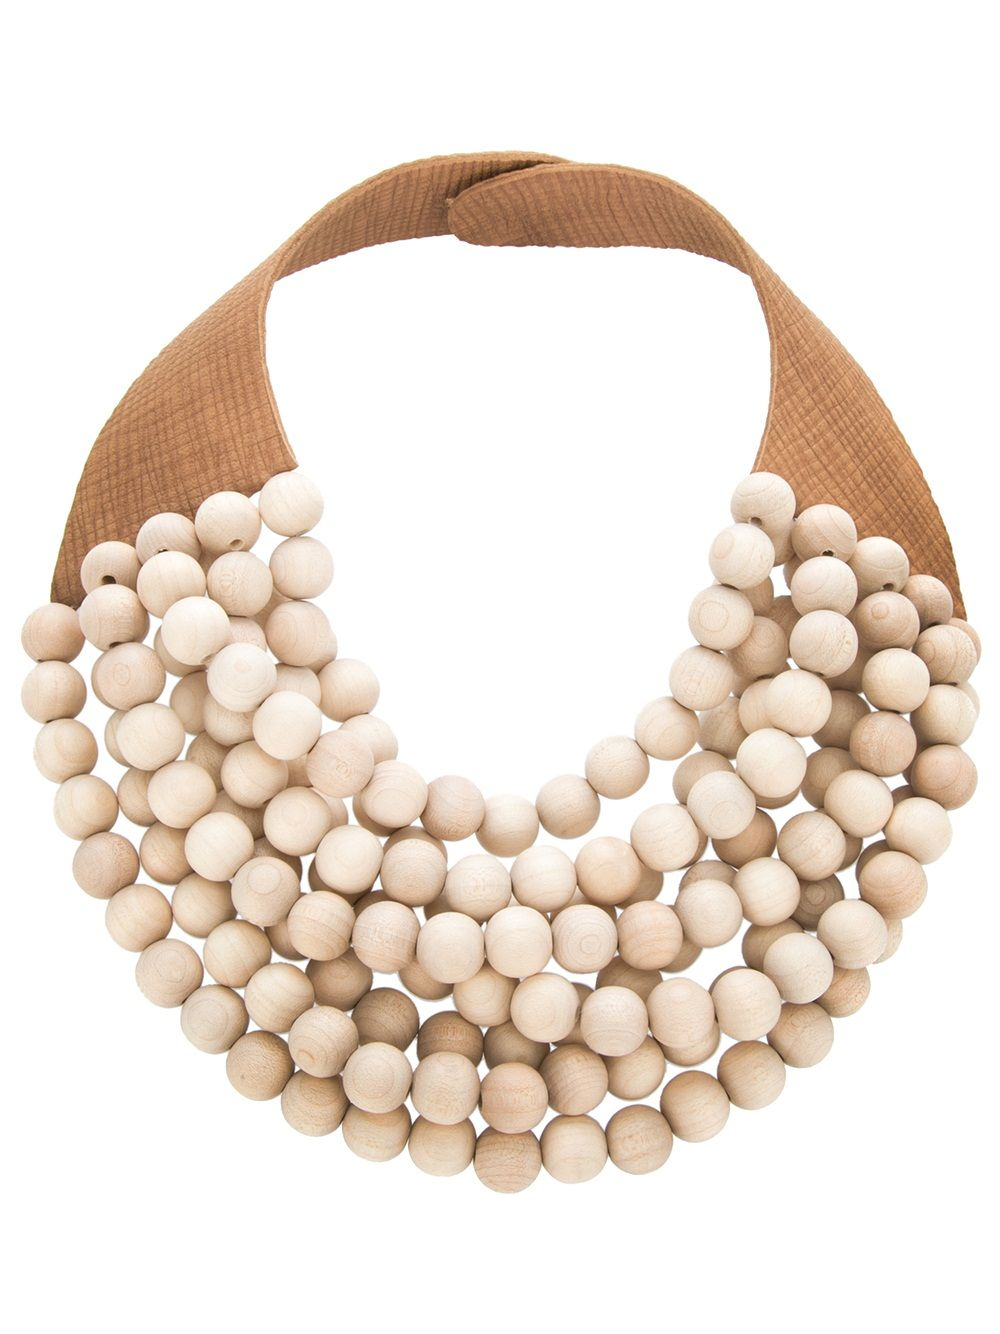 Brown calf leather necklace from Rosanna Fani , featuring a multi-strap wood effect beads    Collar de piel de becerro marrón de Rosanna Fani, que ofrece un multi-correa de imitación a madera perlas